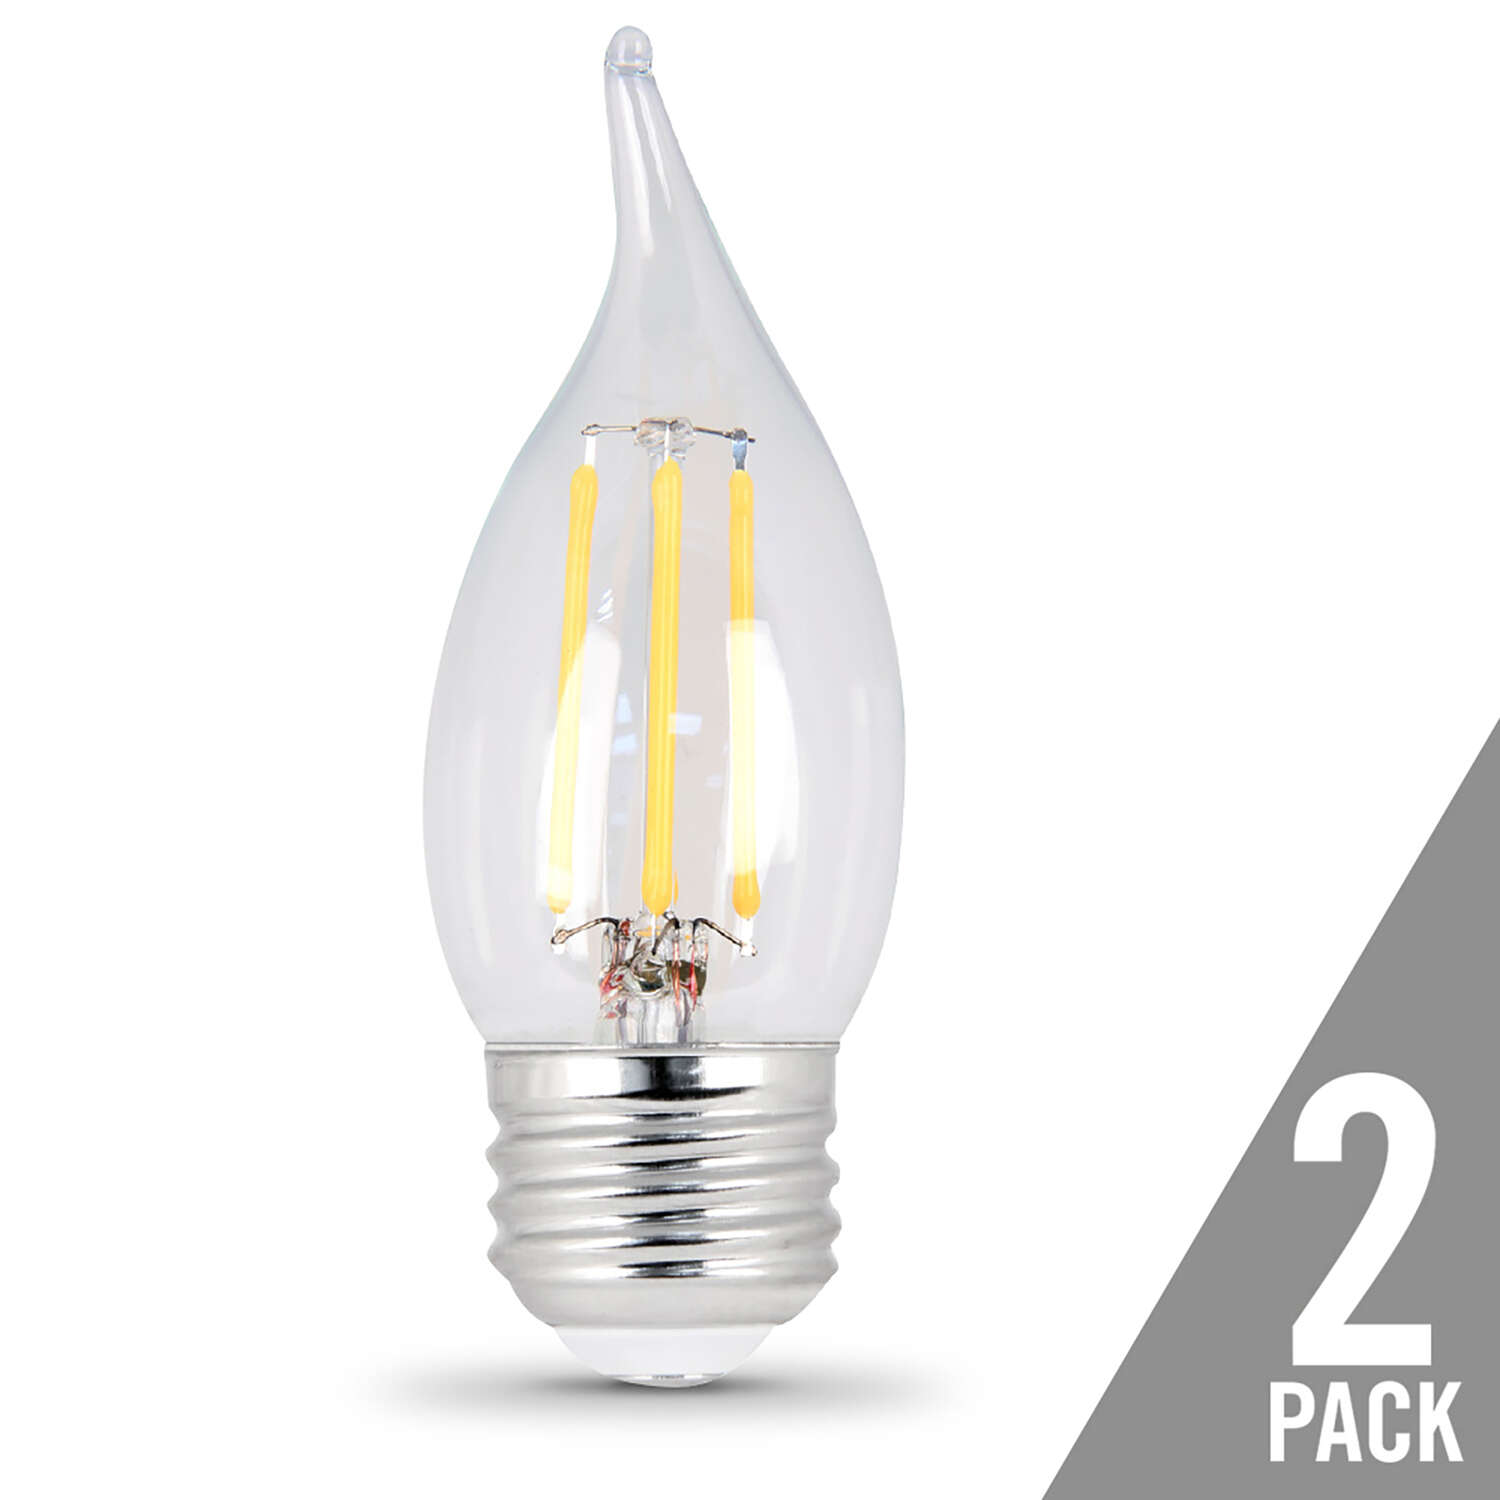 FEIT Electric  4.5 watts CA10  LED Bulb  300 lumens Soft White  Chandelier  40 Watt Equivalence